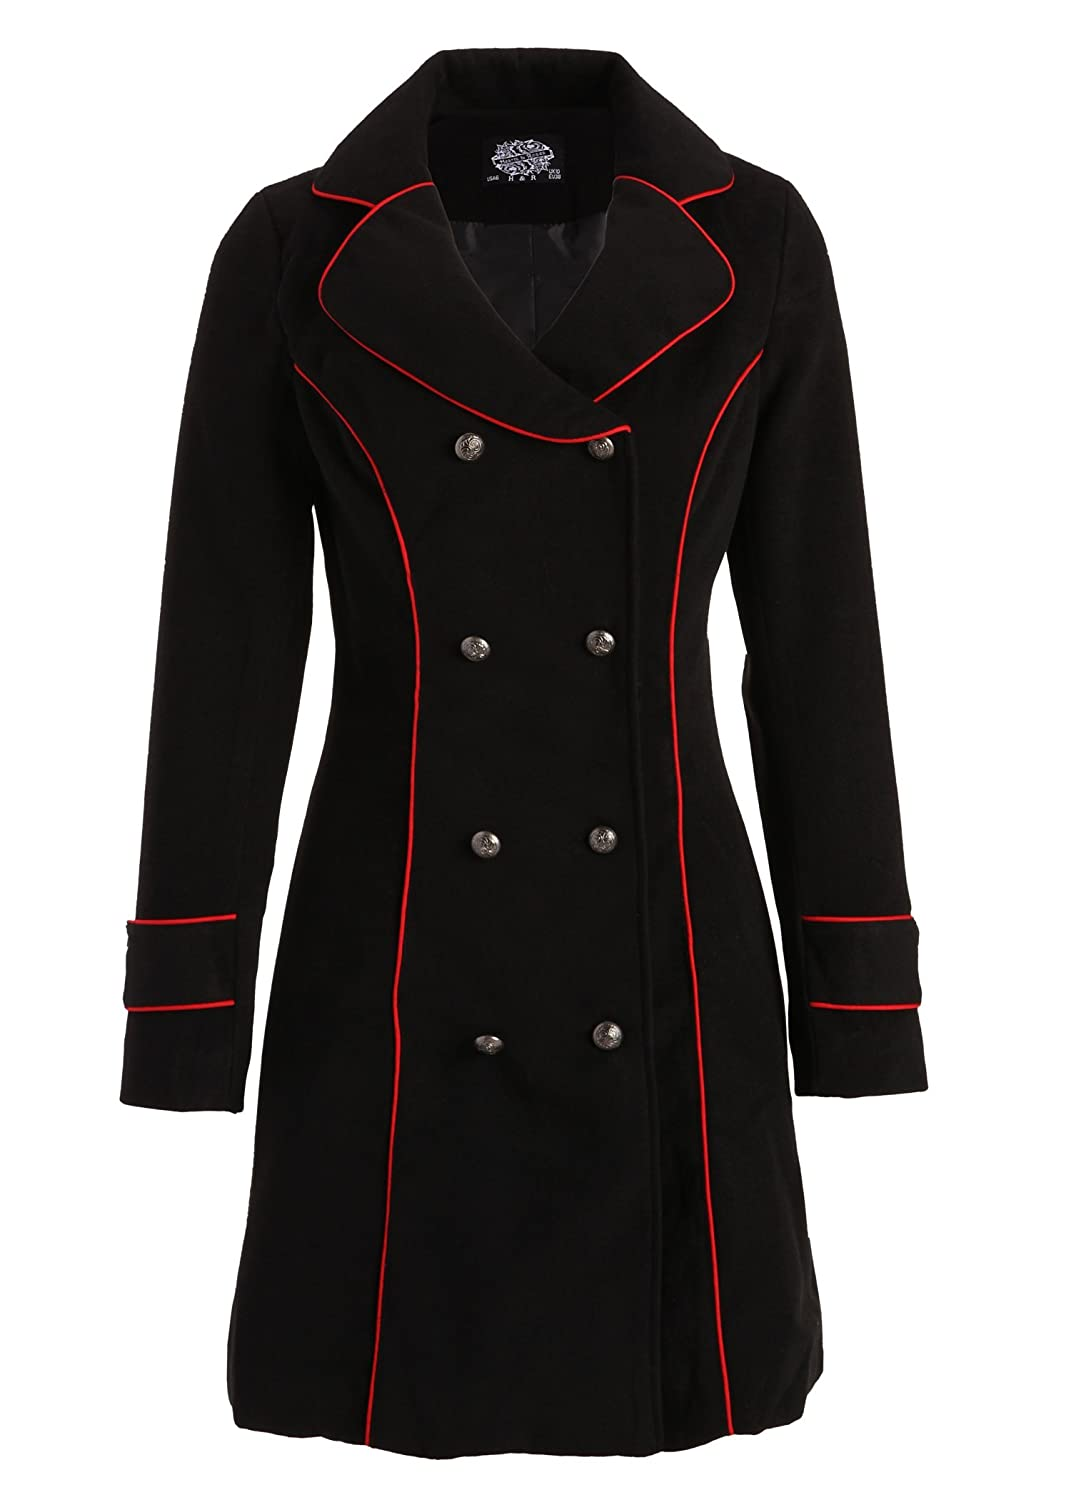 Vintage Coats & Jackets | Retro Coats and Jackets Black Retro Vintage Military Winter Jacket Coat with Red Piping $79.90 AT vintagedancer.com